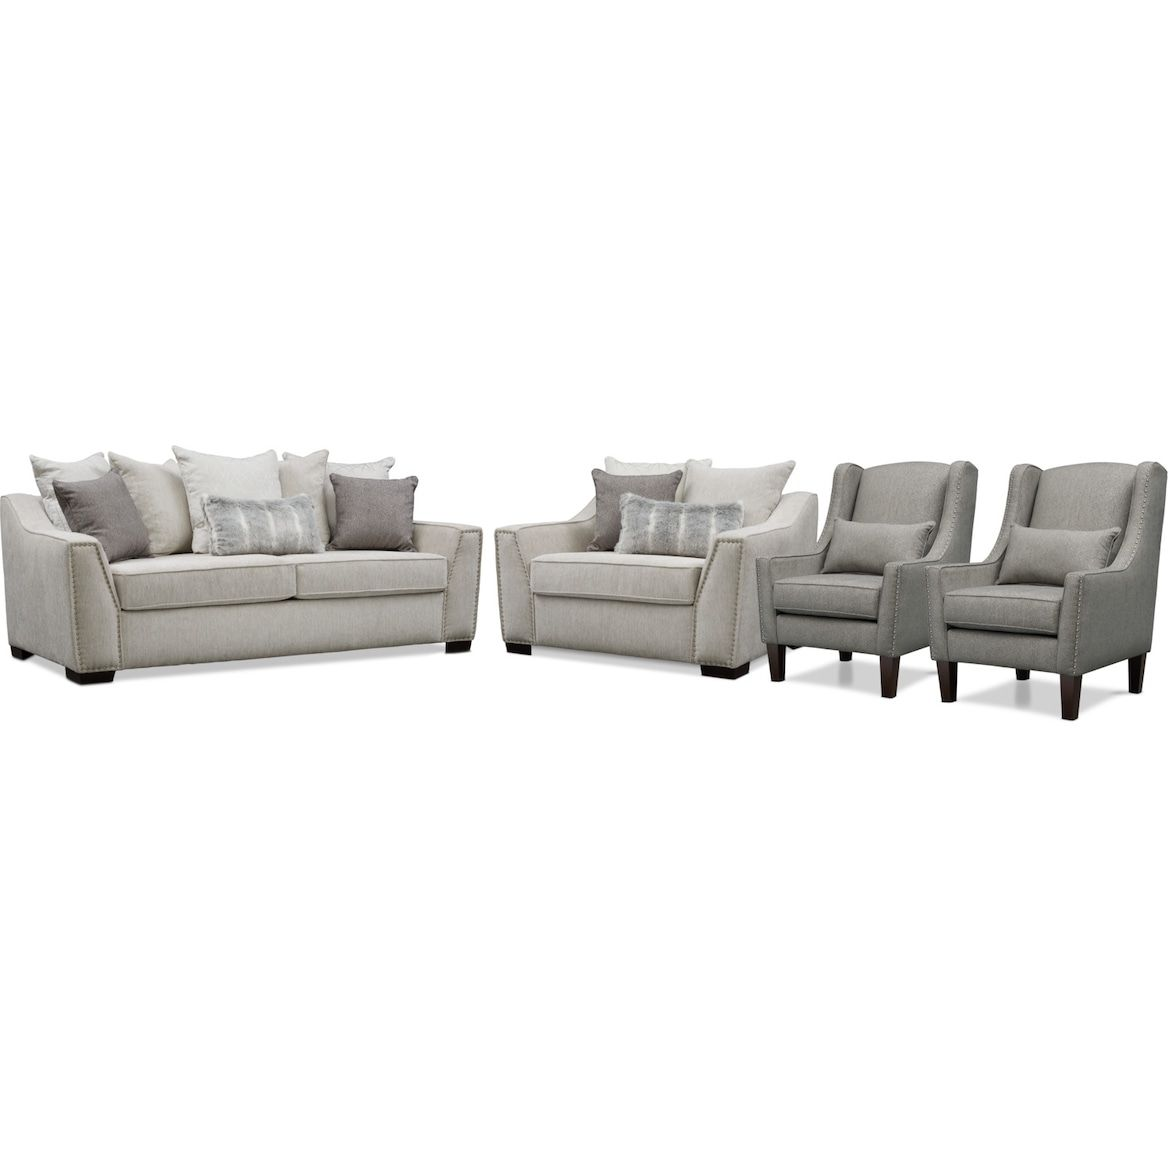 Roxie Sofa Chair And A Half And 2 Accent Chairs Chair And A Half Value City Furniture Accent Chairs For Living Room